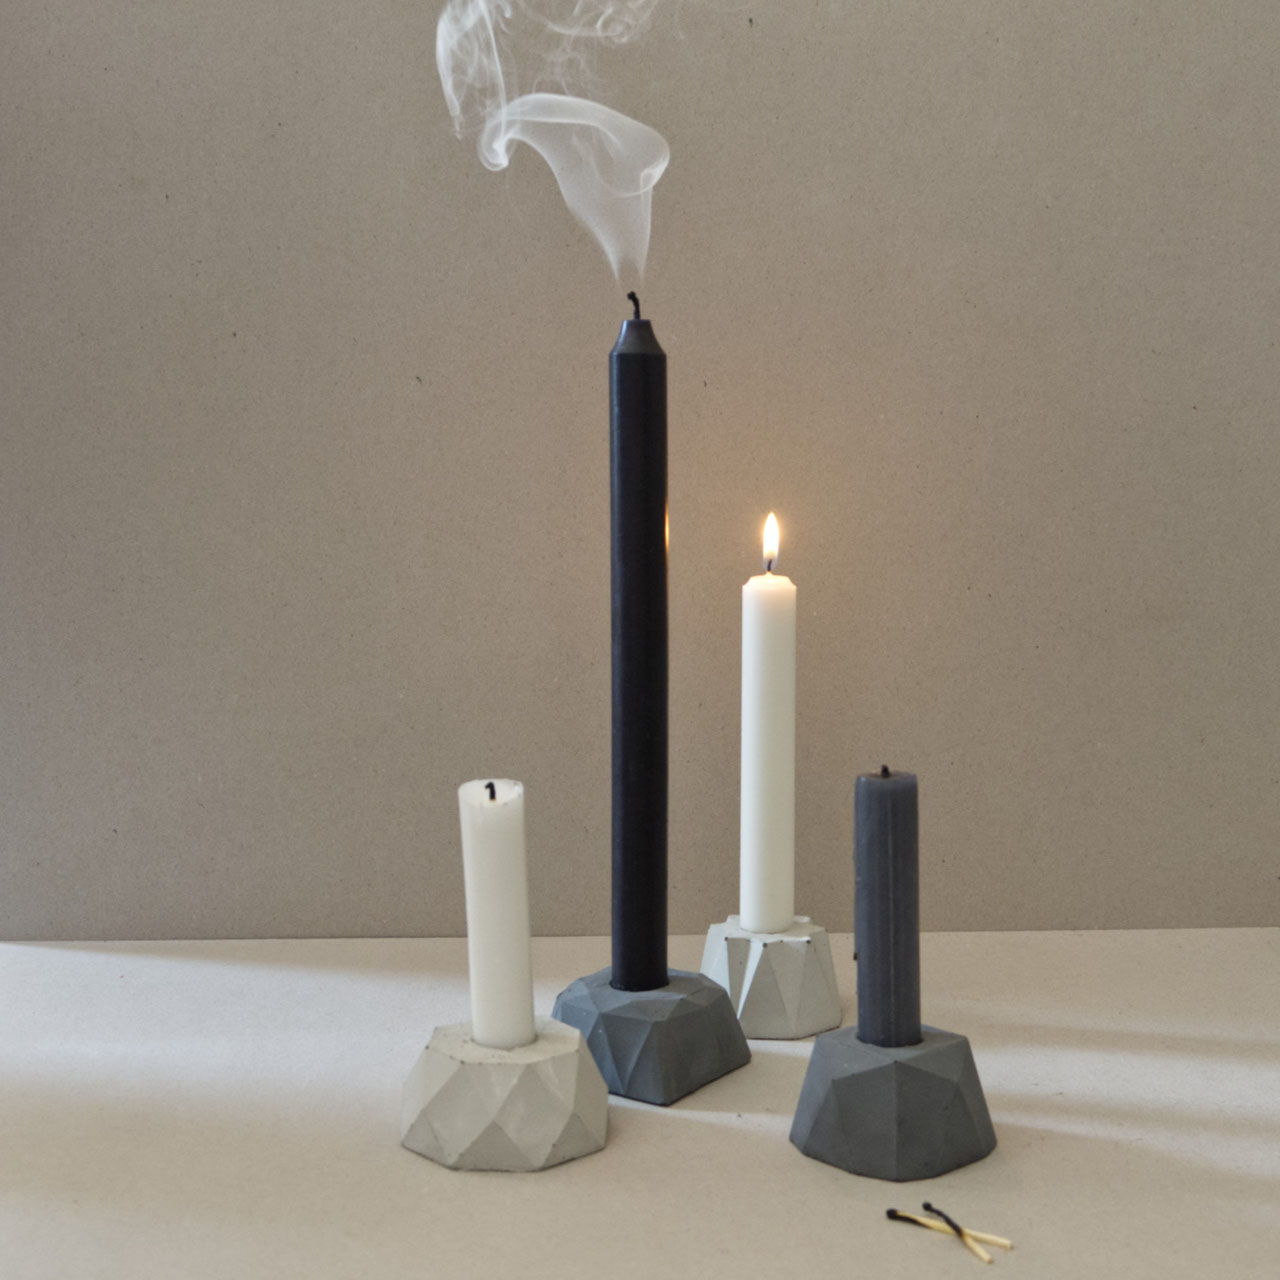 Geometric Concrete Dinner Candle Holder Pasinga Photographs Design